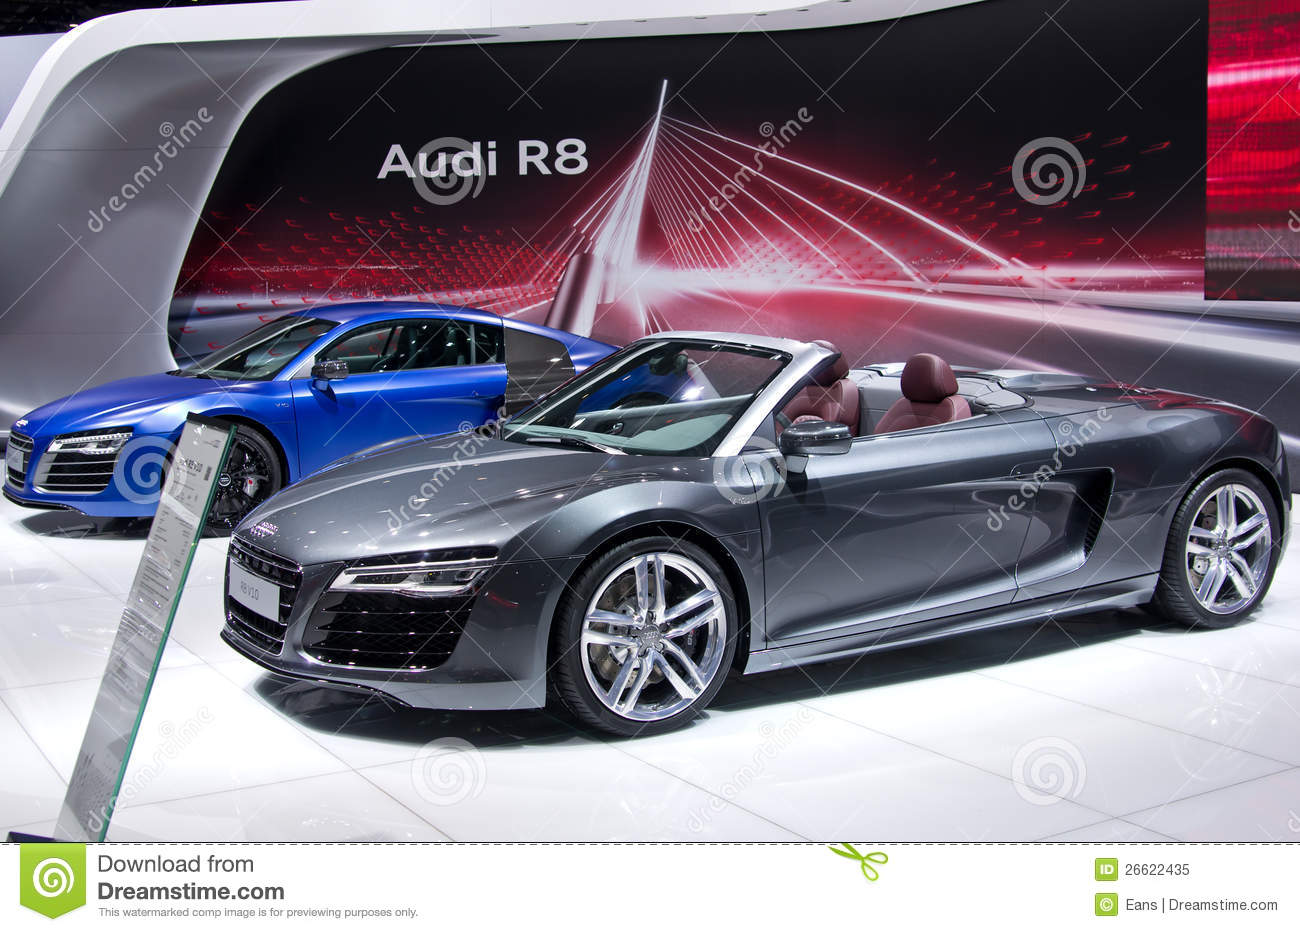 audi r8 cabrio editorial image image 26622435. Black Bedroom Furniture Sets. Home Design Ideas